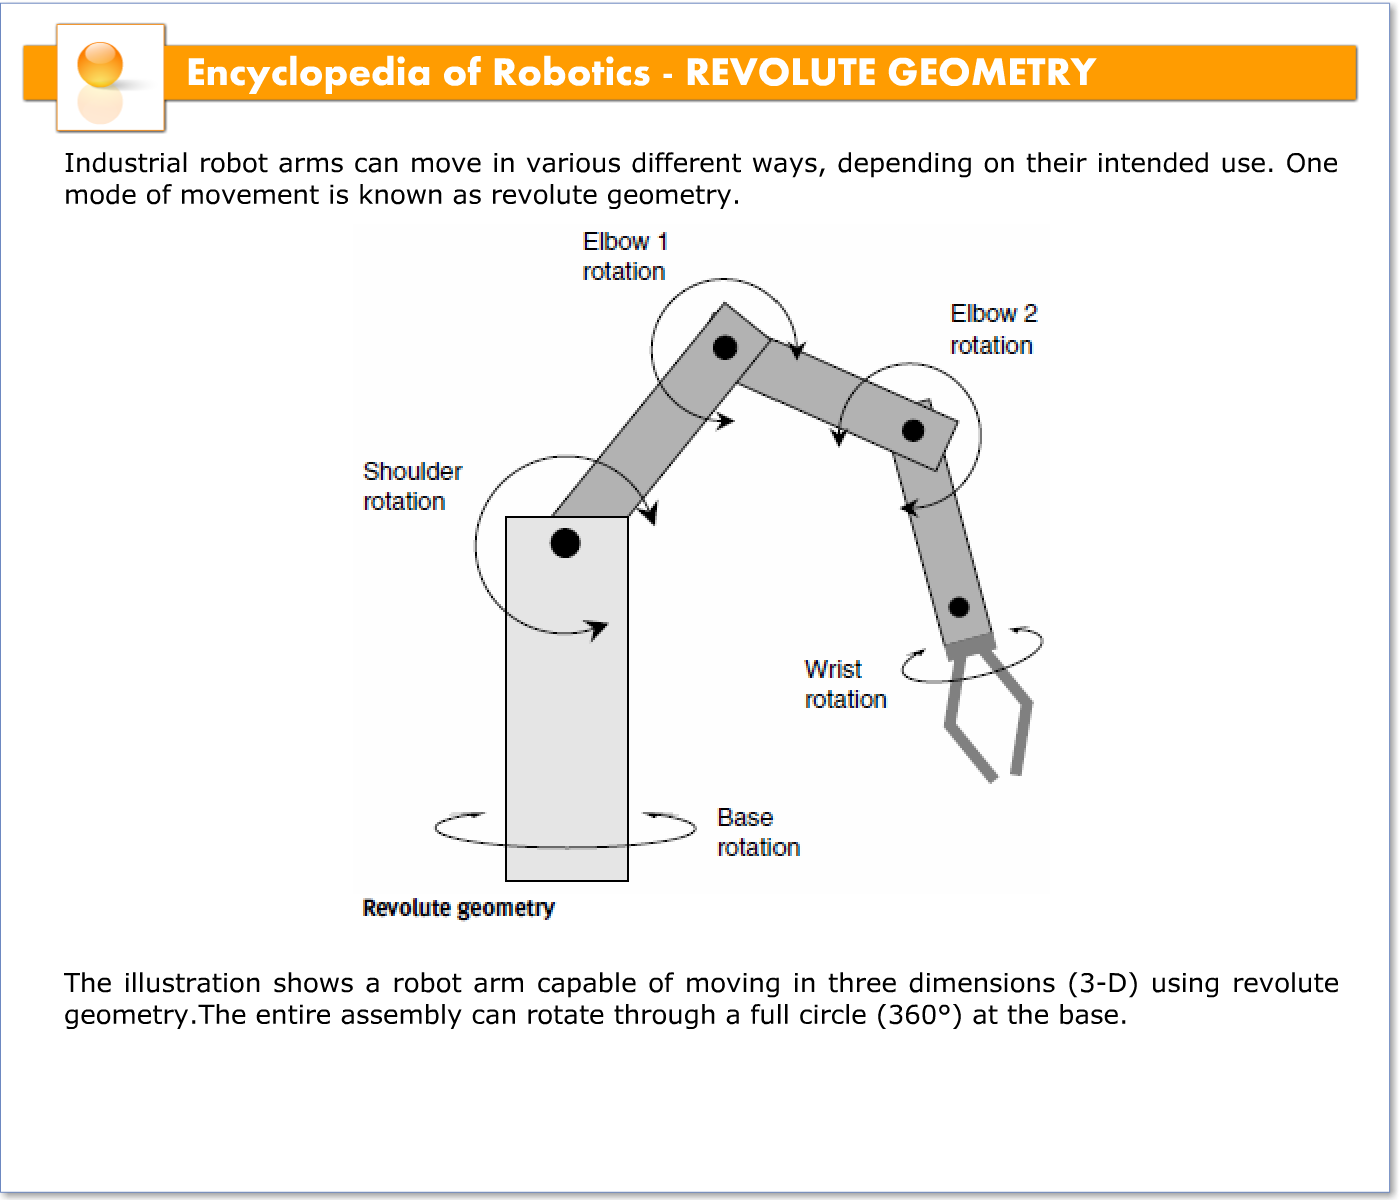 robot geometry essay Free essay on robots: future technologies and how they will effect us available totally free at echeatcom, the largest free essay community.